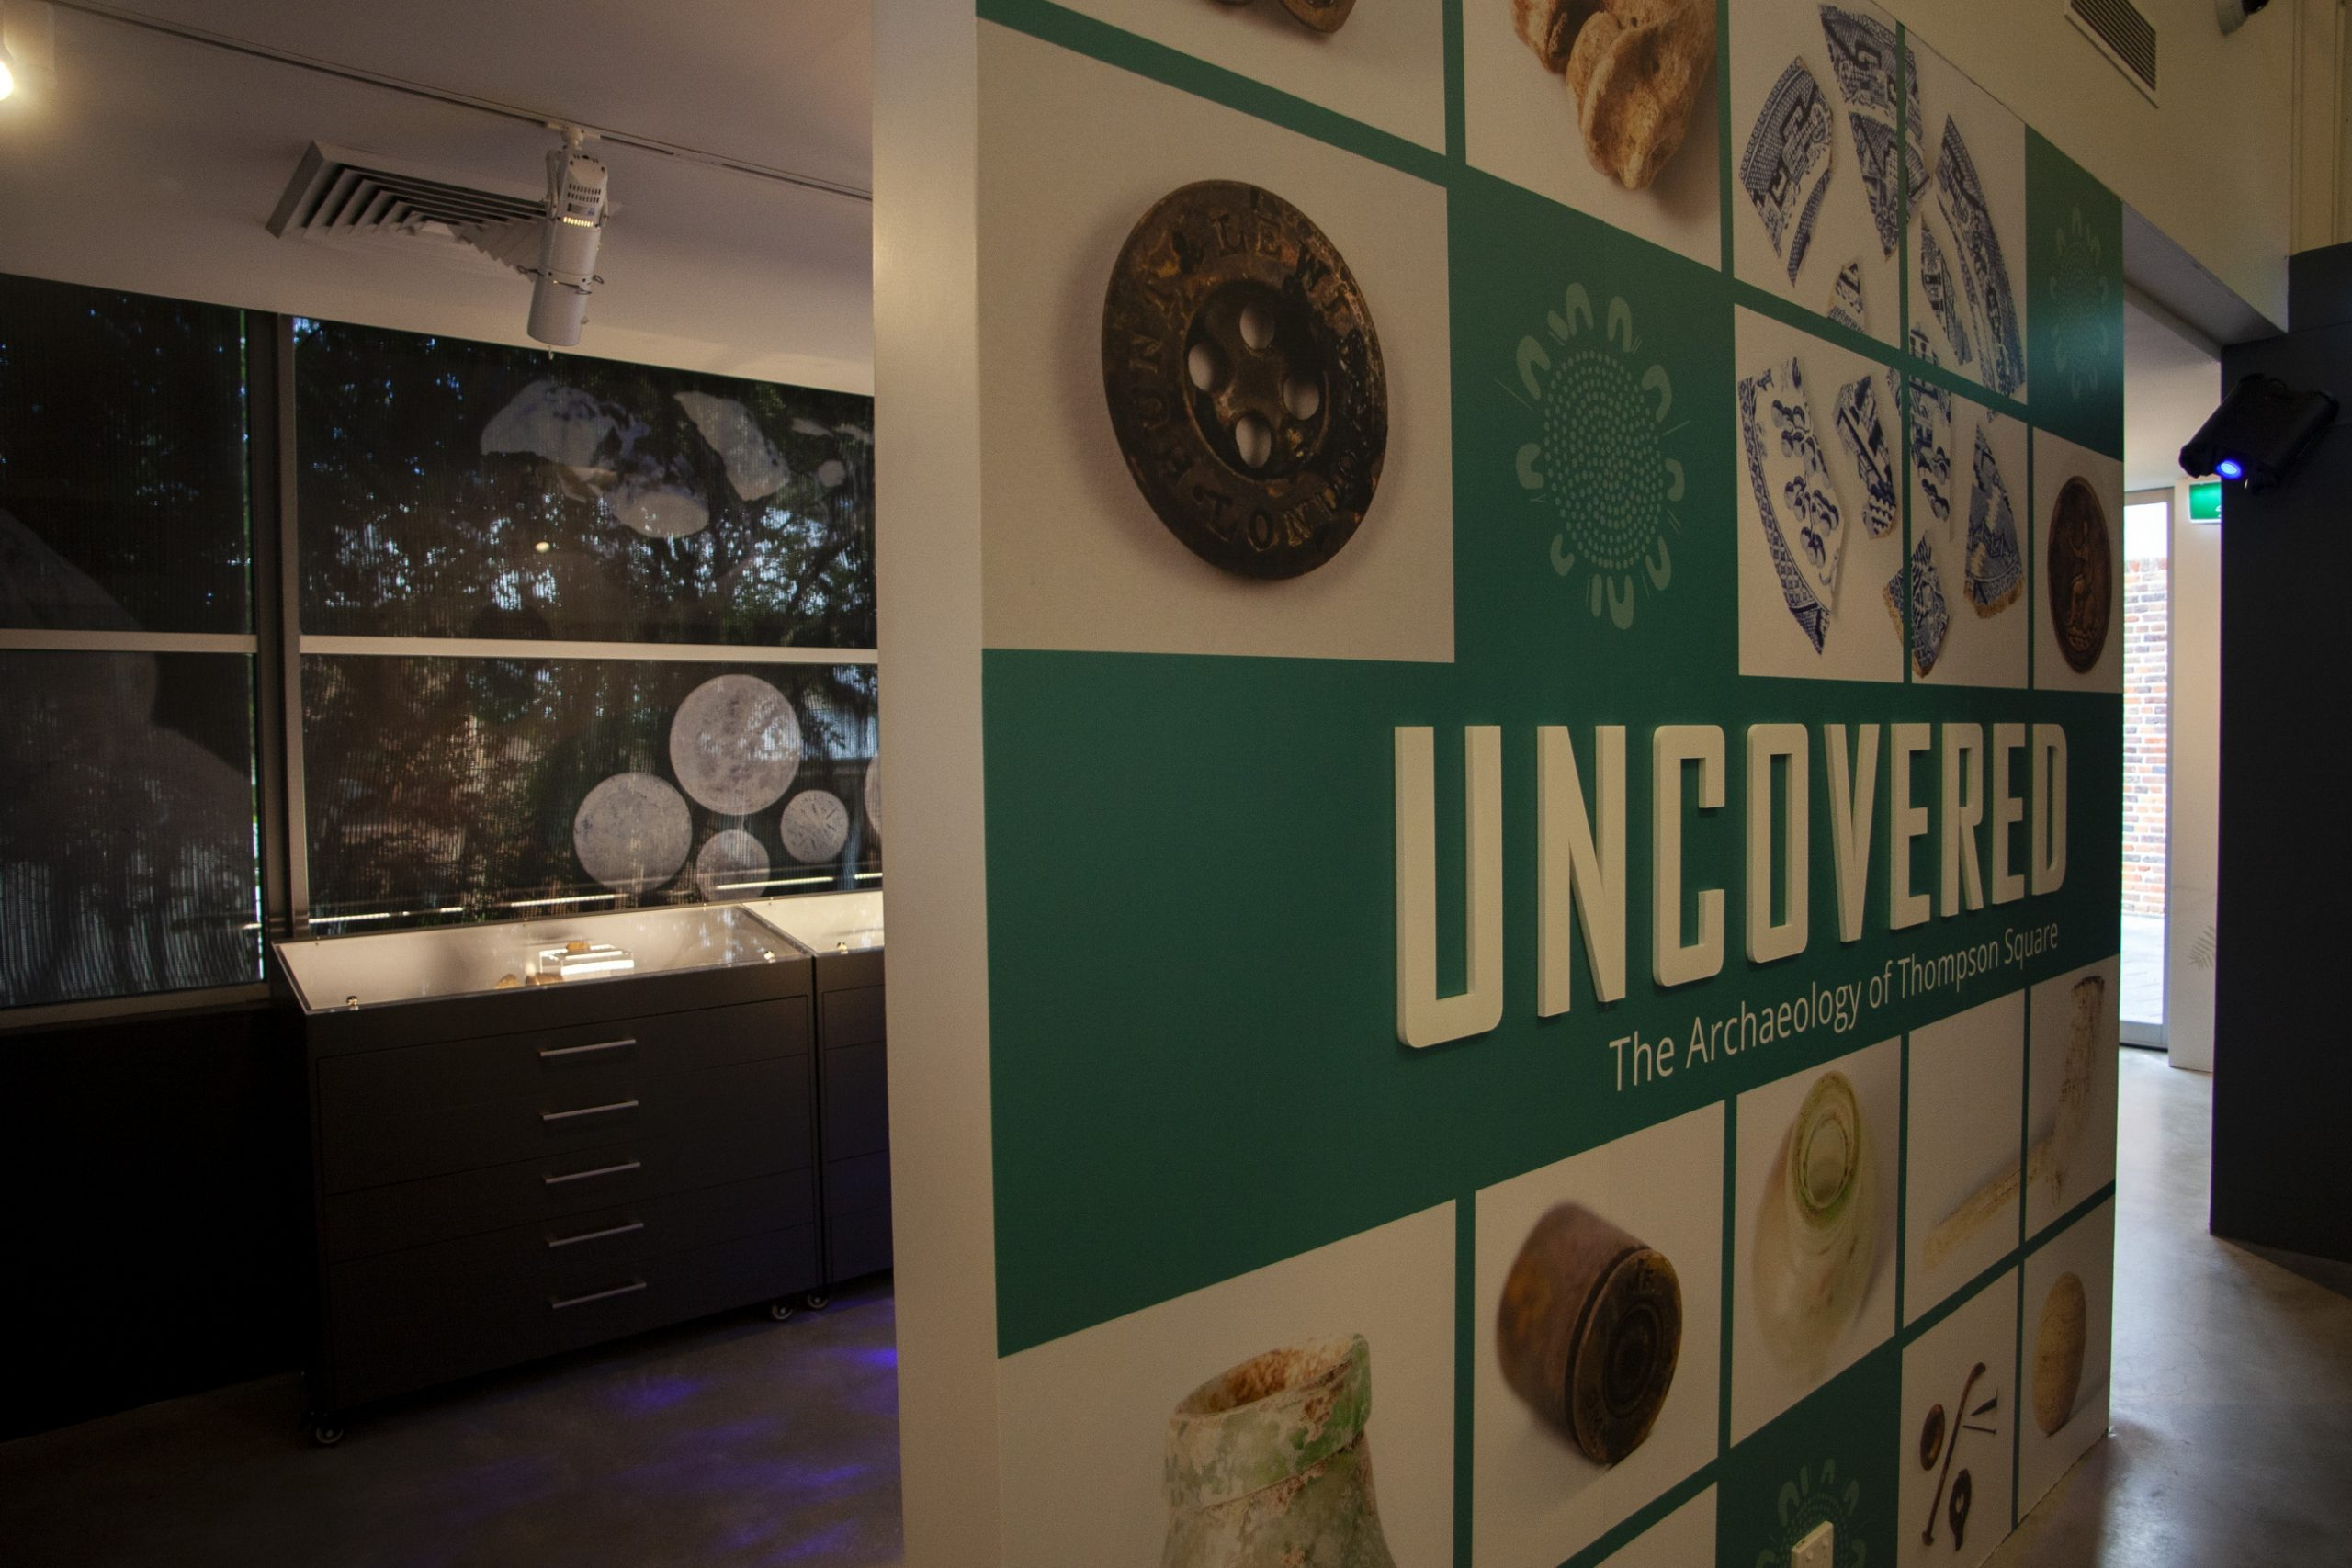 UNCOVERED Exhibition